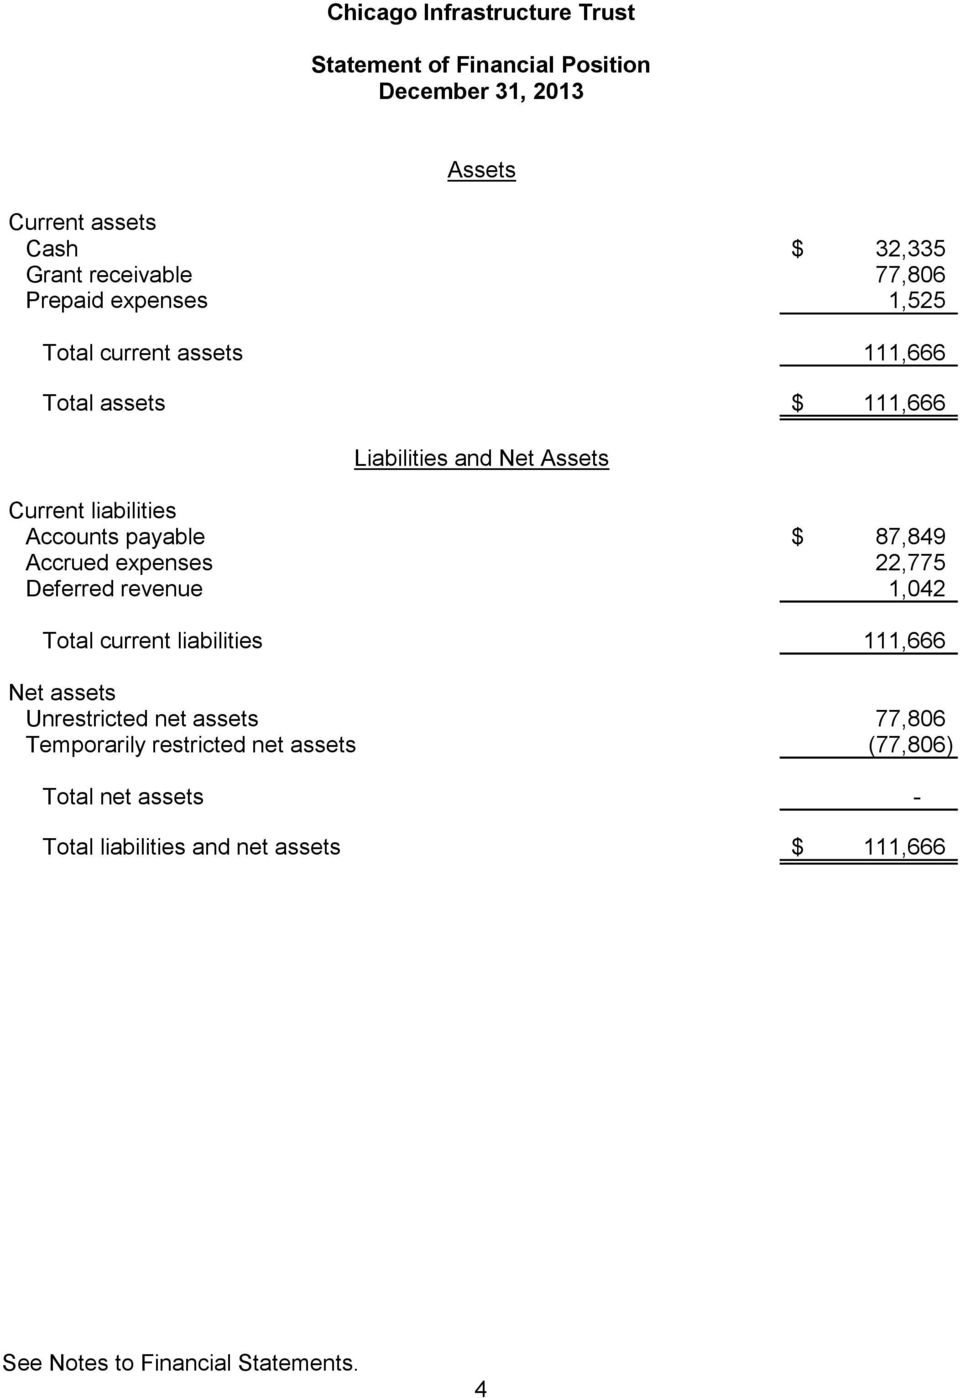 Accrued expenses 22,775 Deferred revenue 1,042 Total current liabilities 111,666 Net assets Unrestricted net assets 77,806